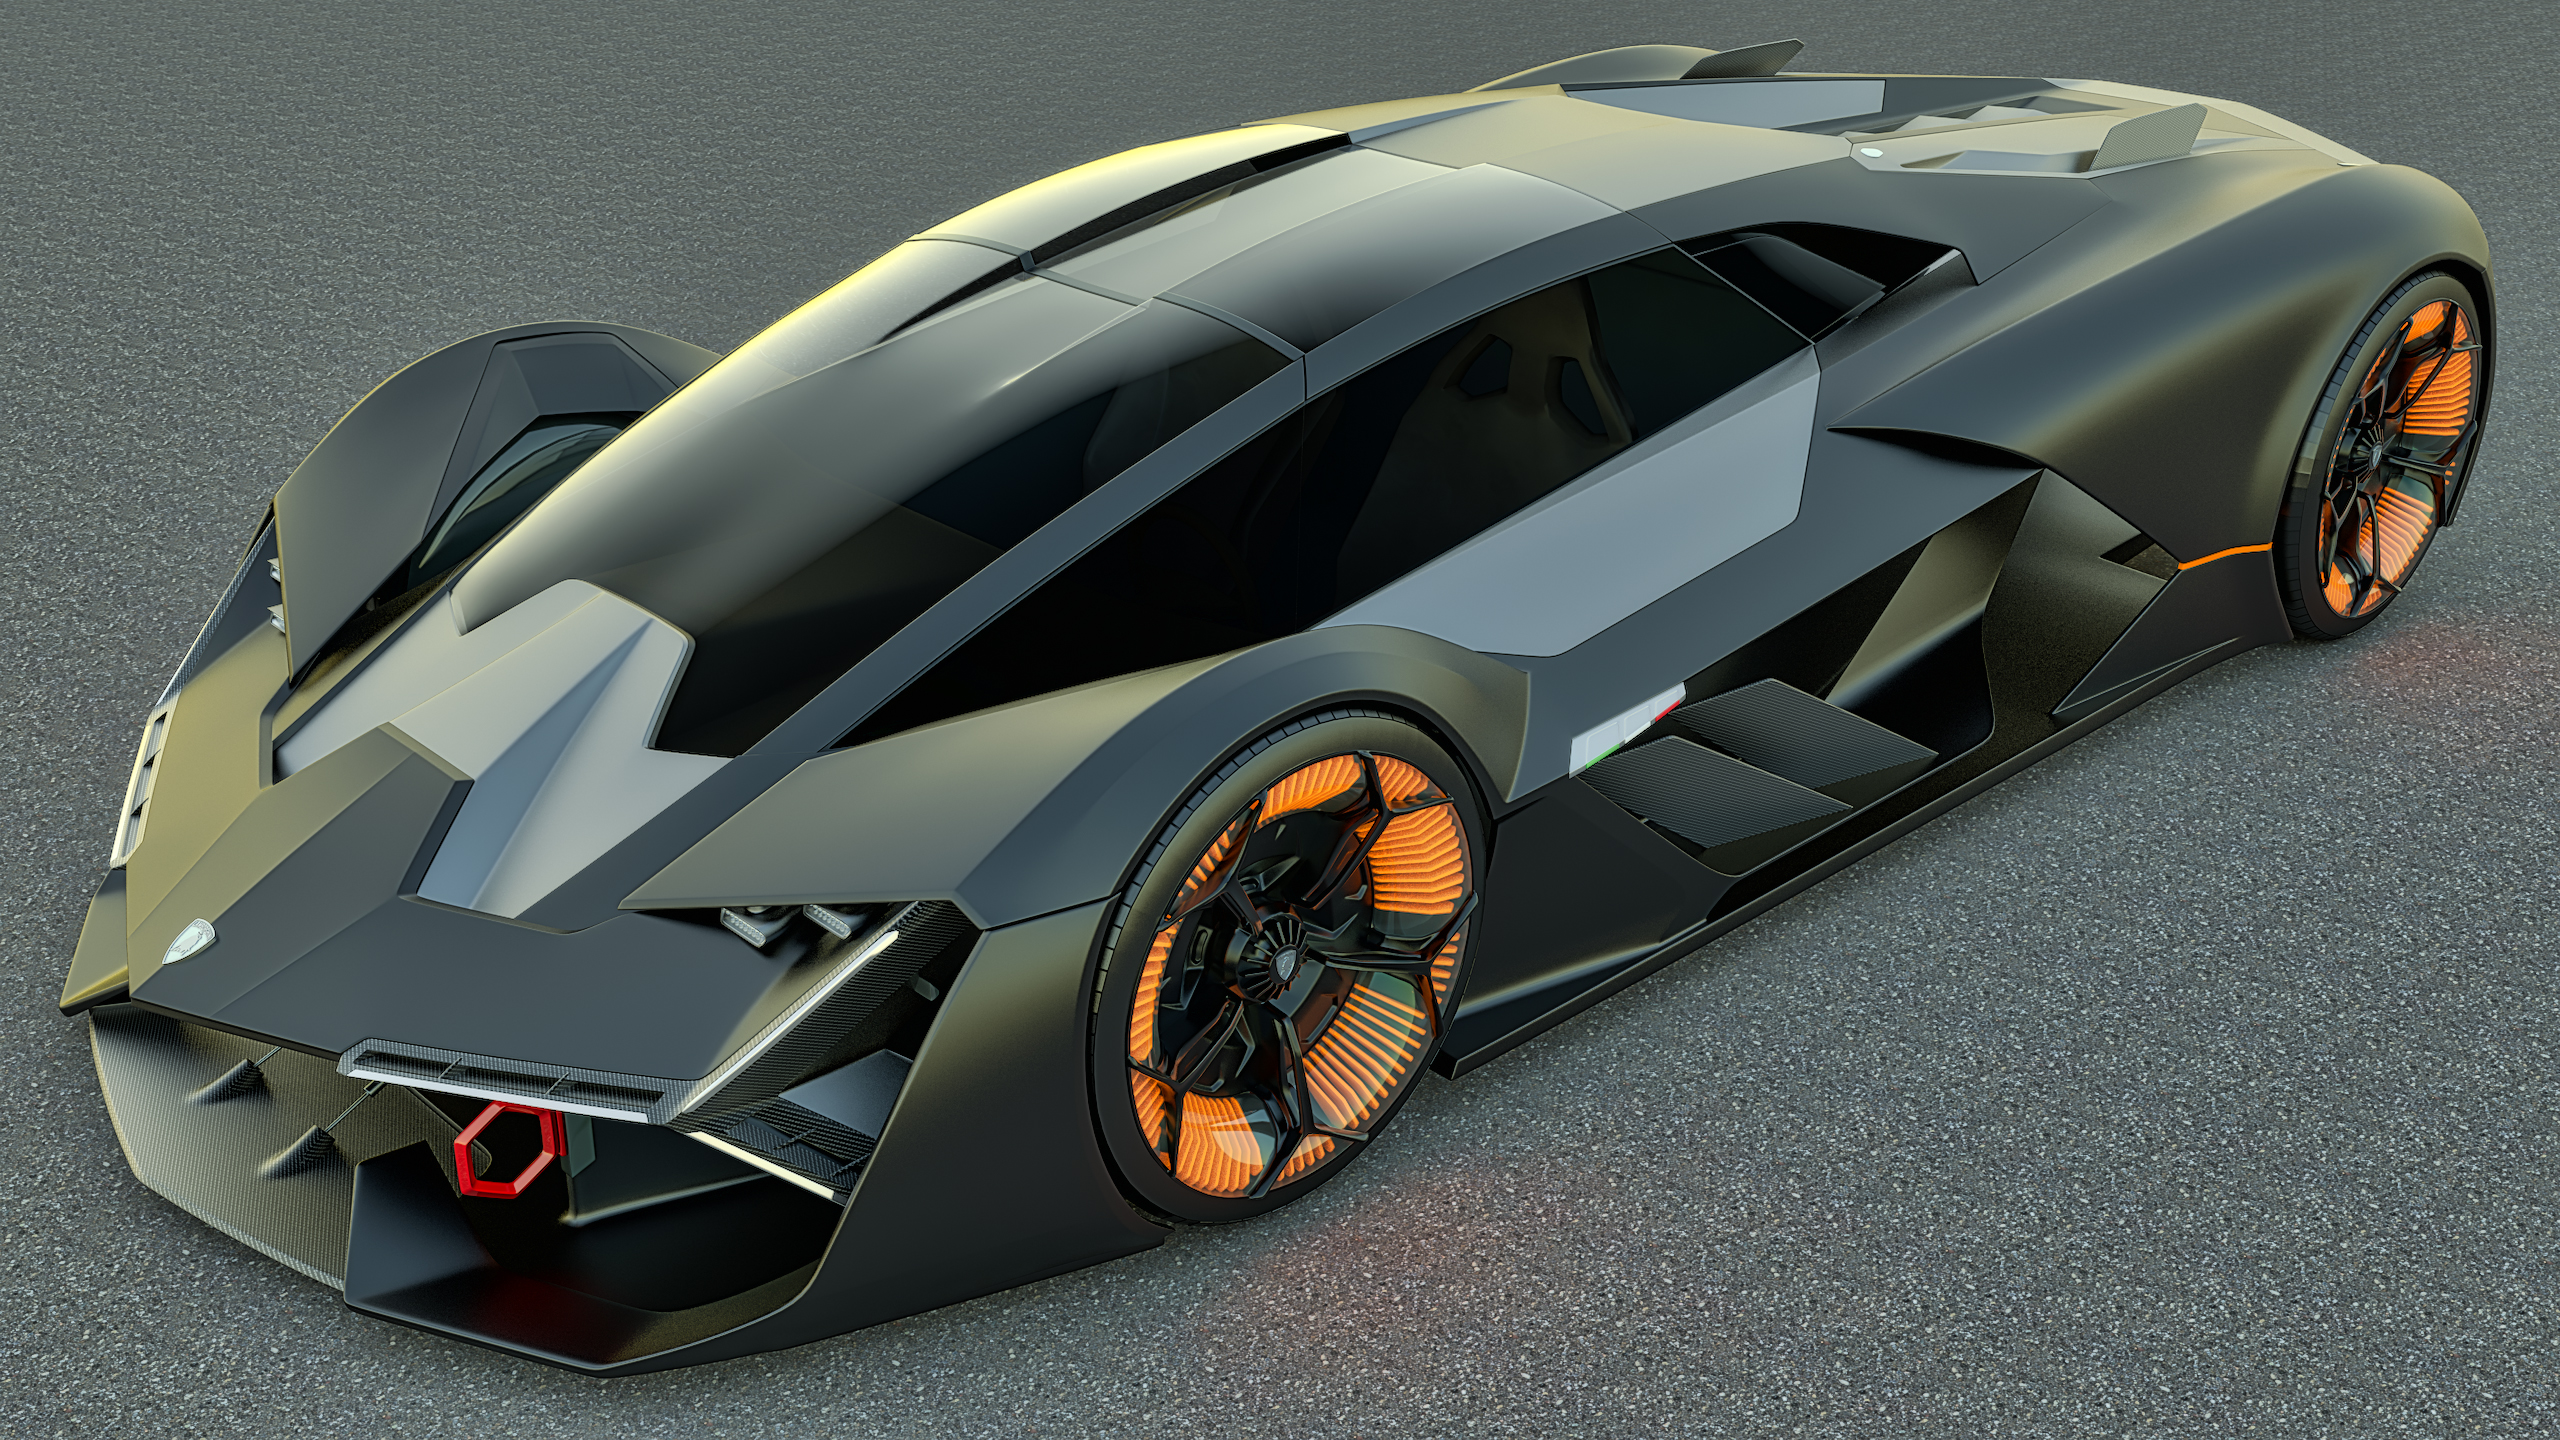 2017 lamborghini terzo millennio concept by samcurry on deviantart. Black Bedroom Furniture Sets. Home Design Ideas